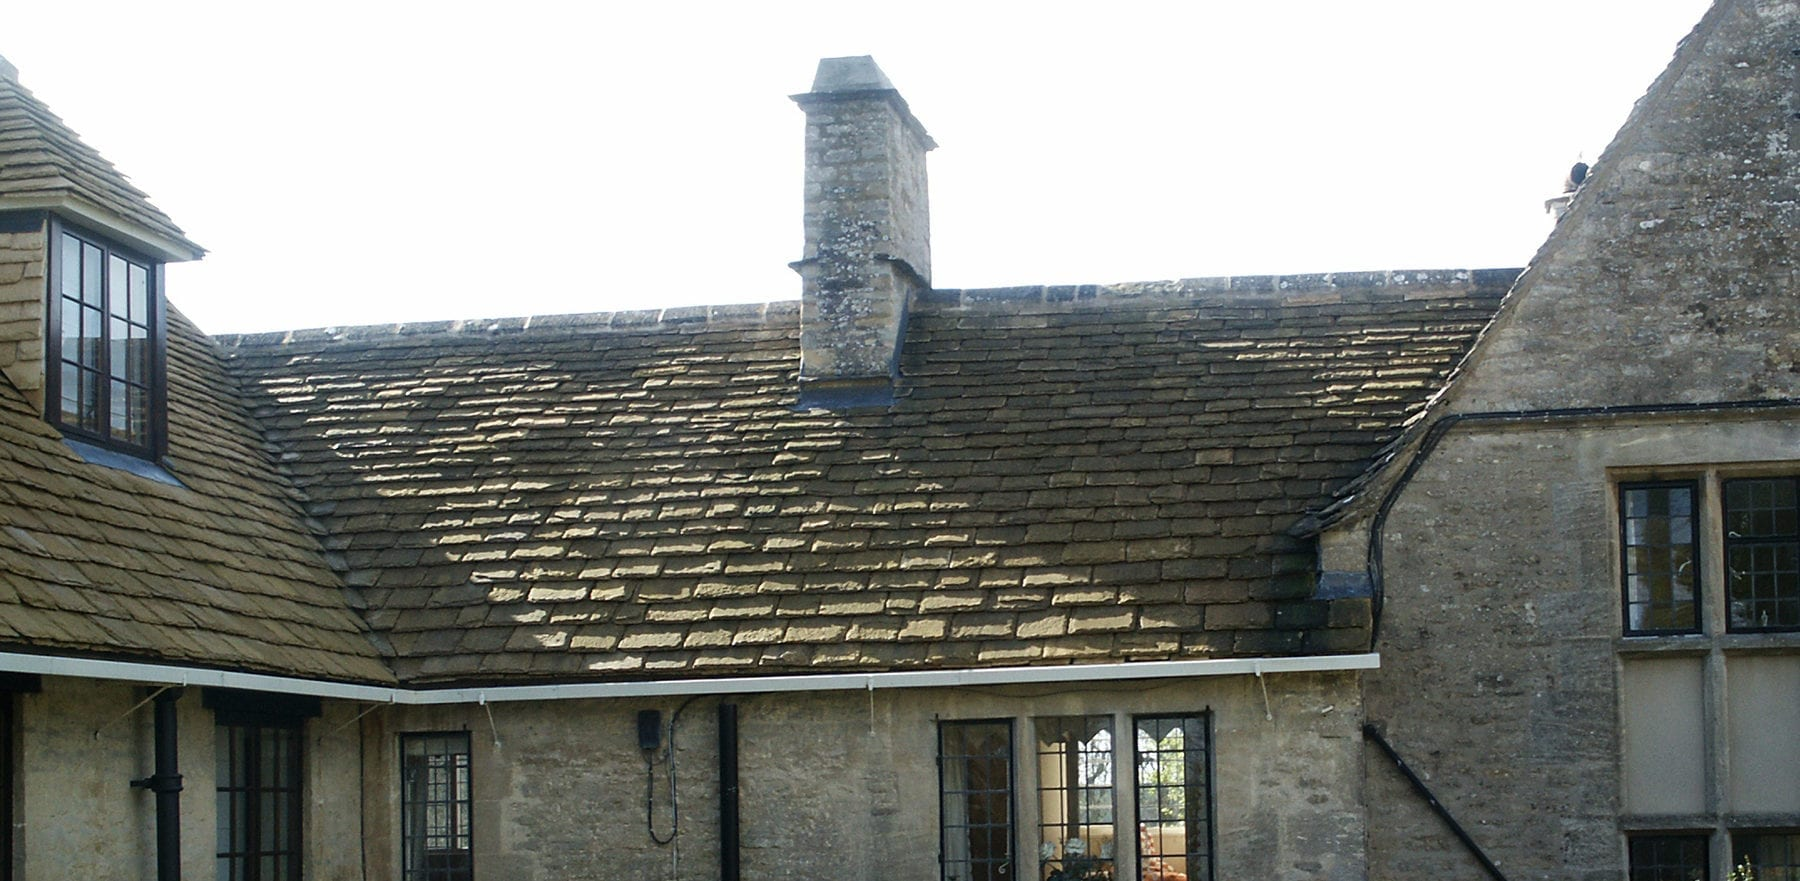 Lifestiles - Natural Stone Roof Tiles - Stroud, England 5